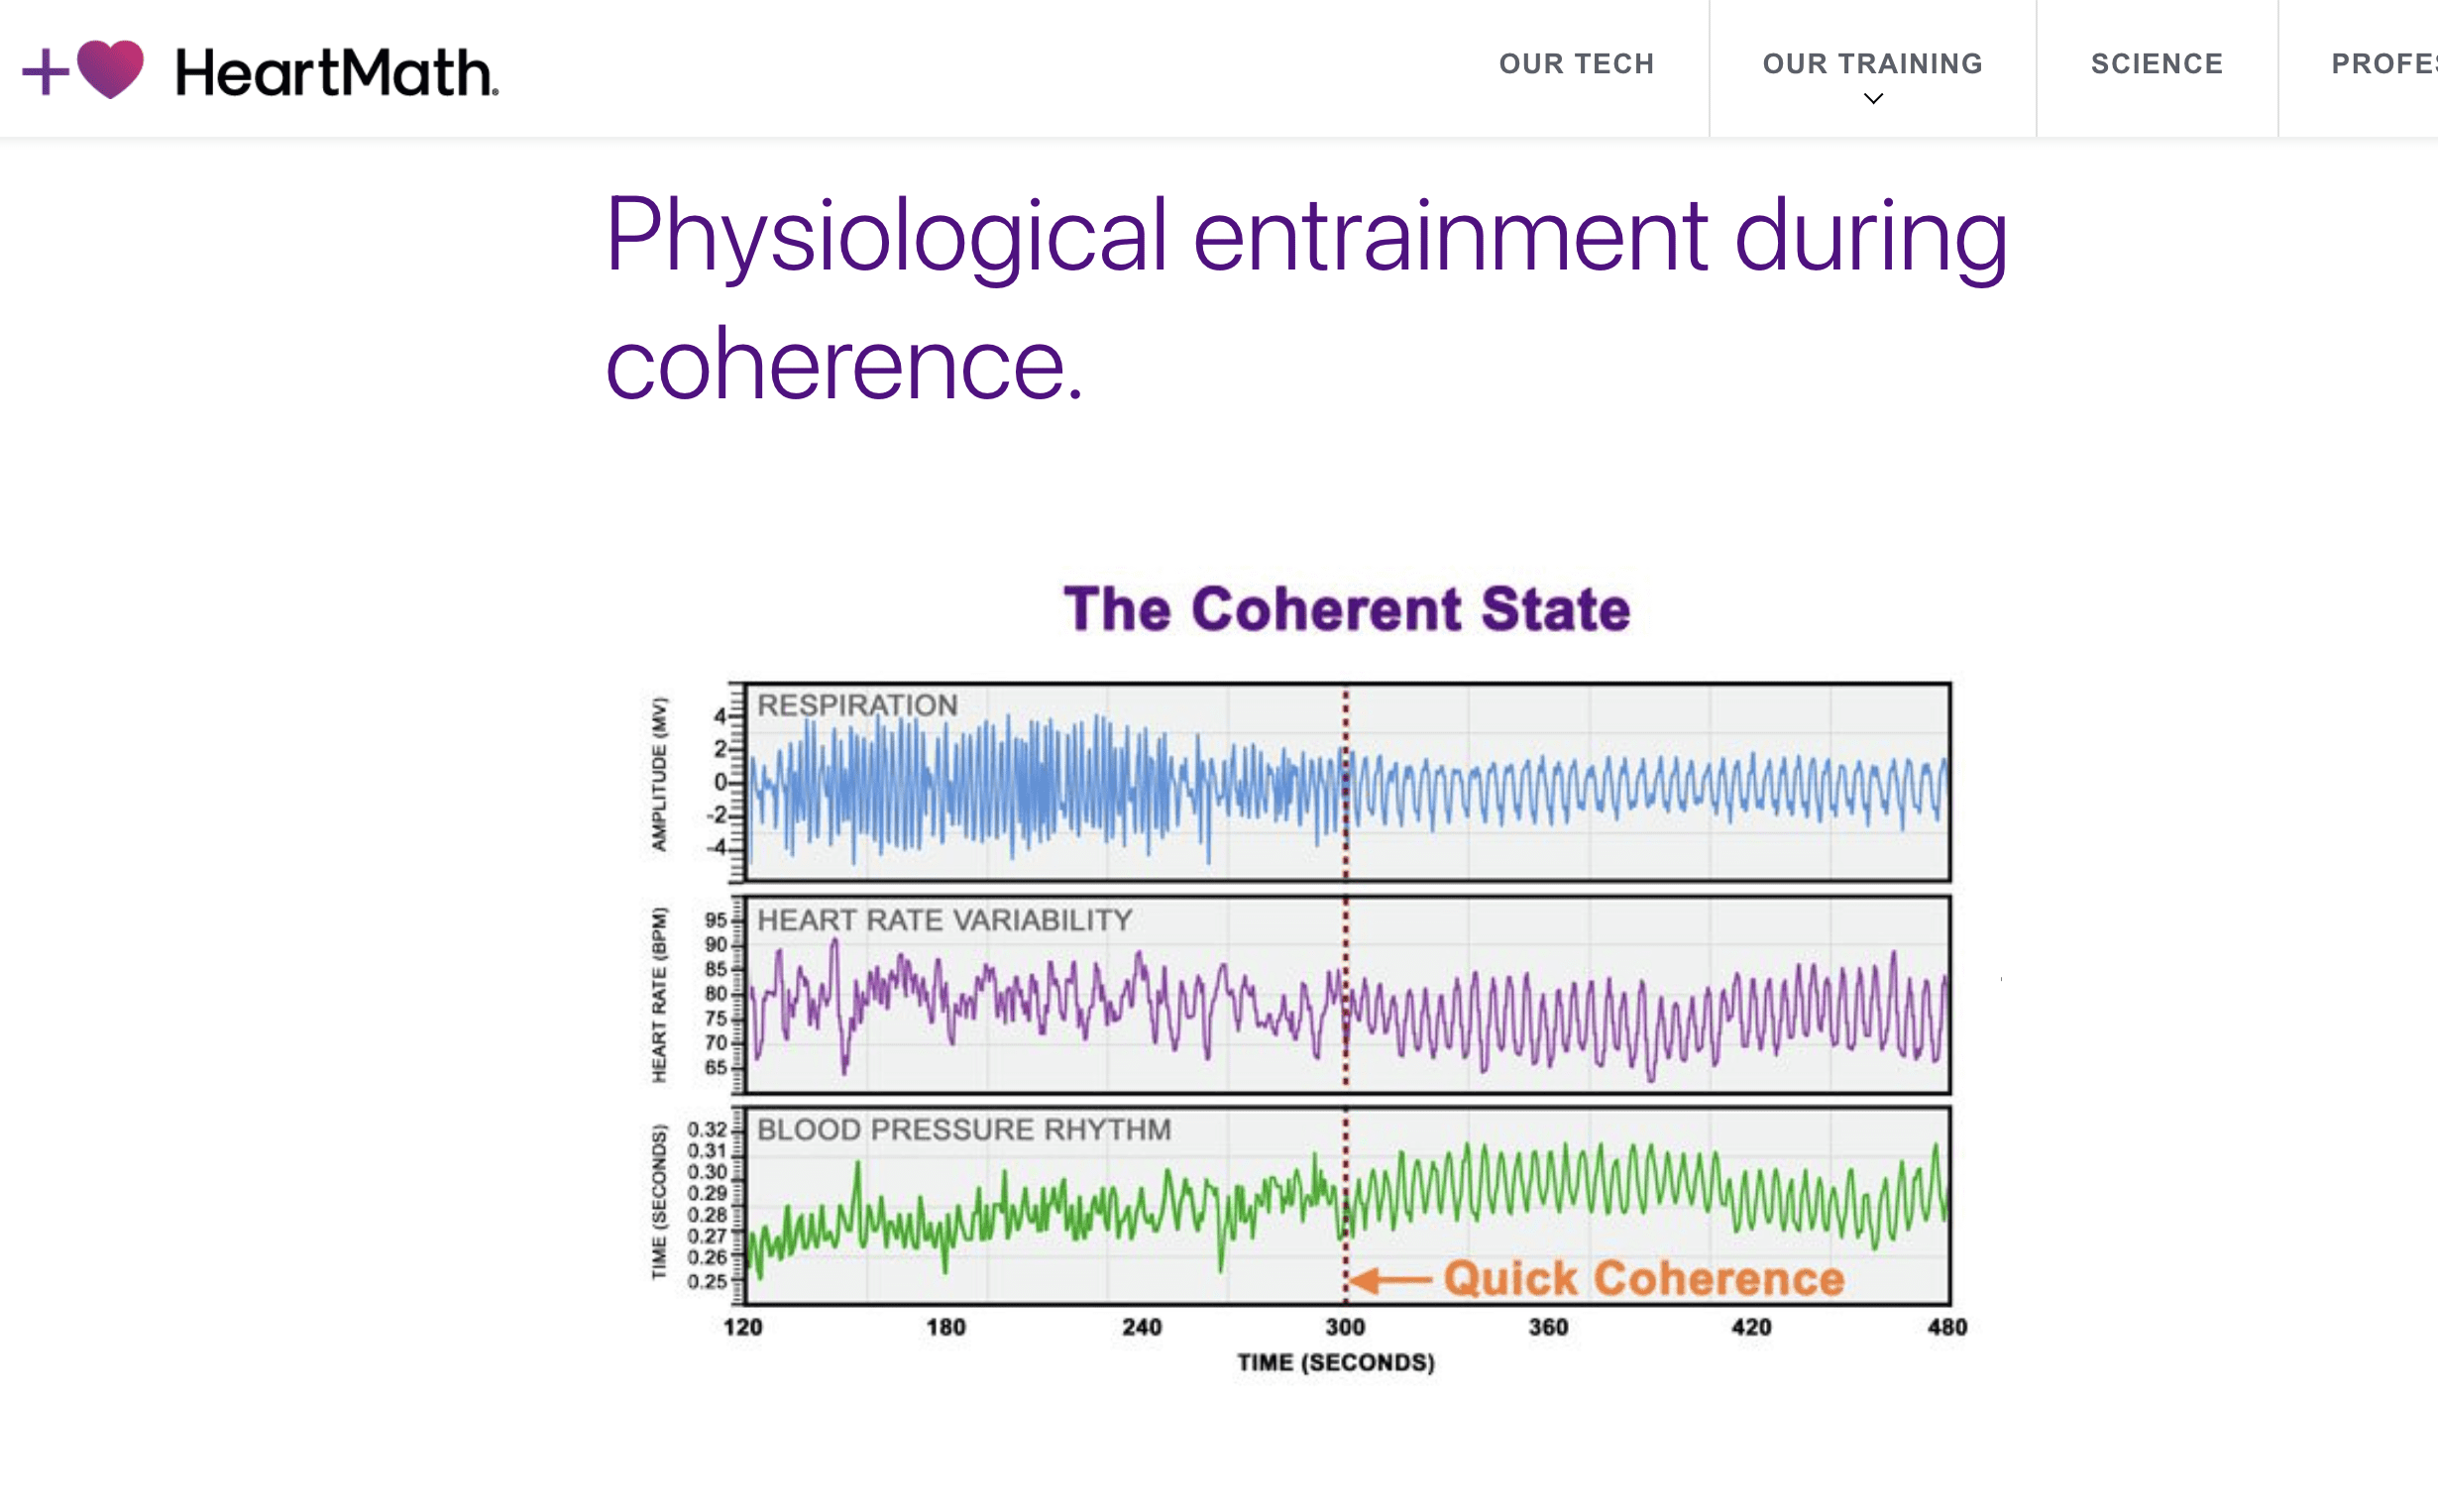 HeartMath Quick Coherence